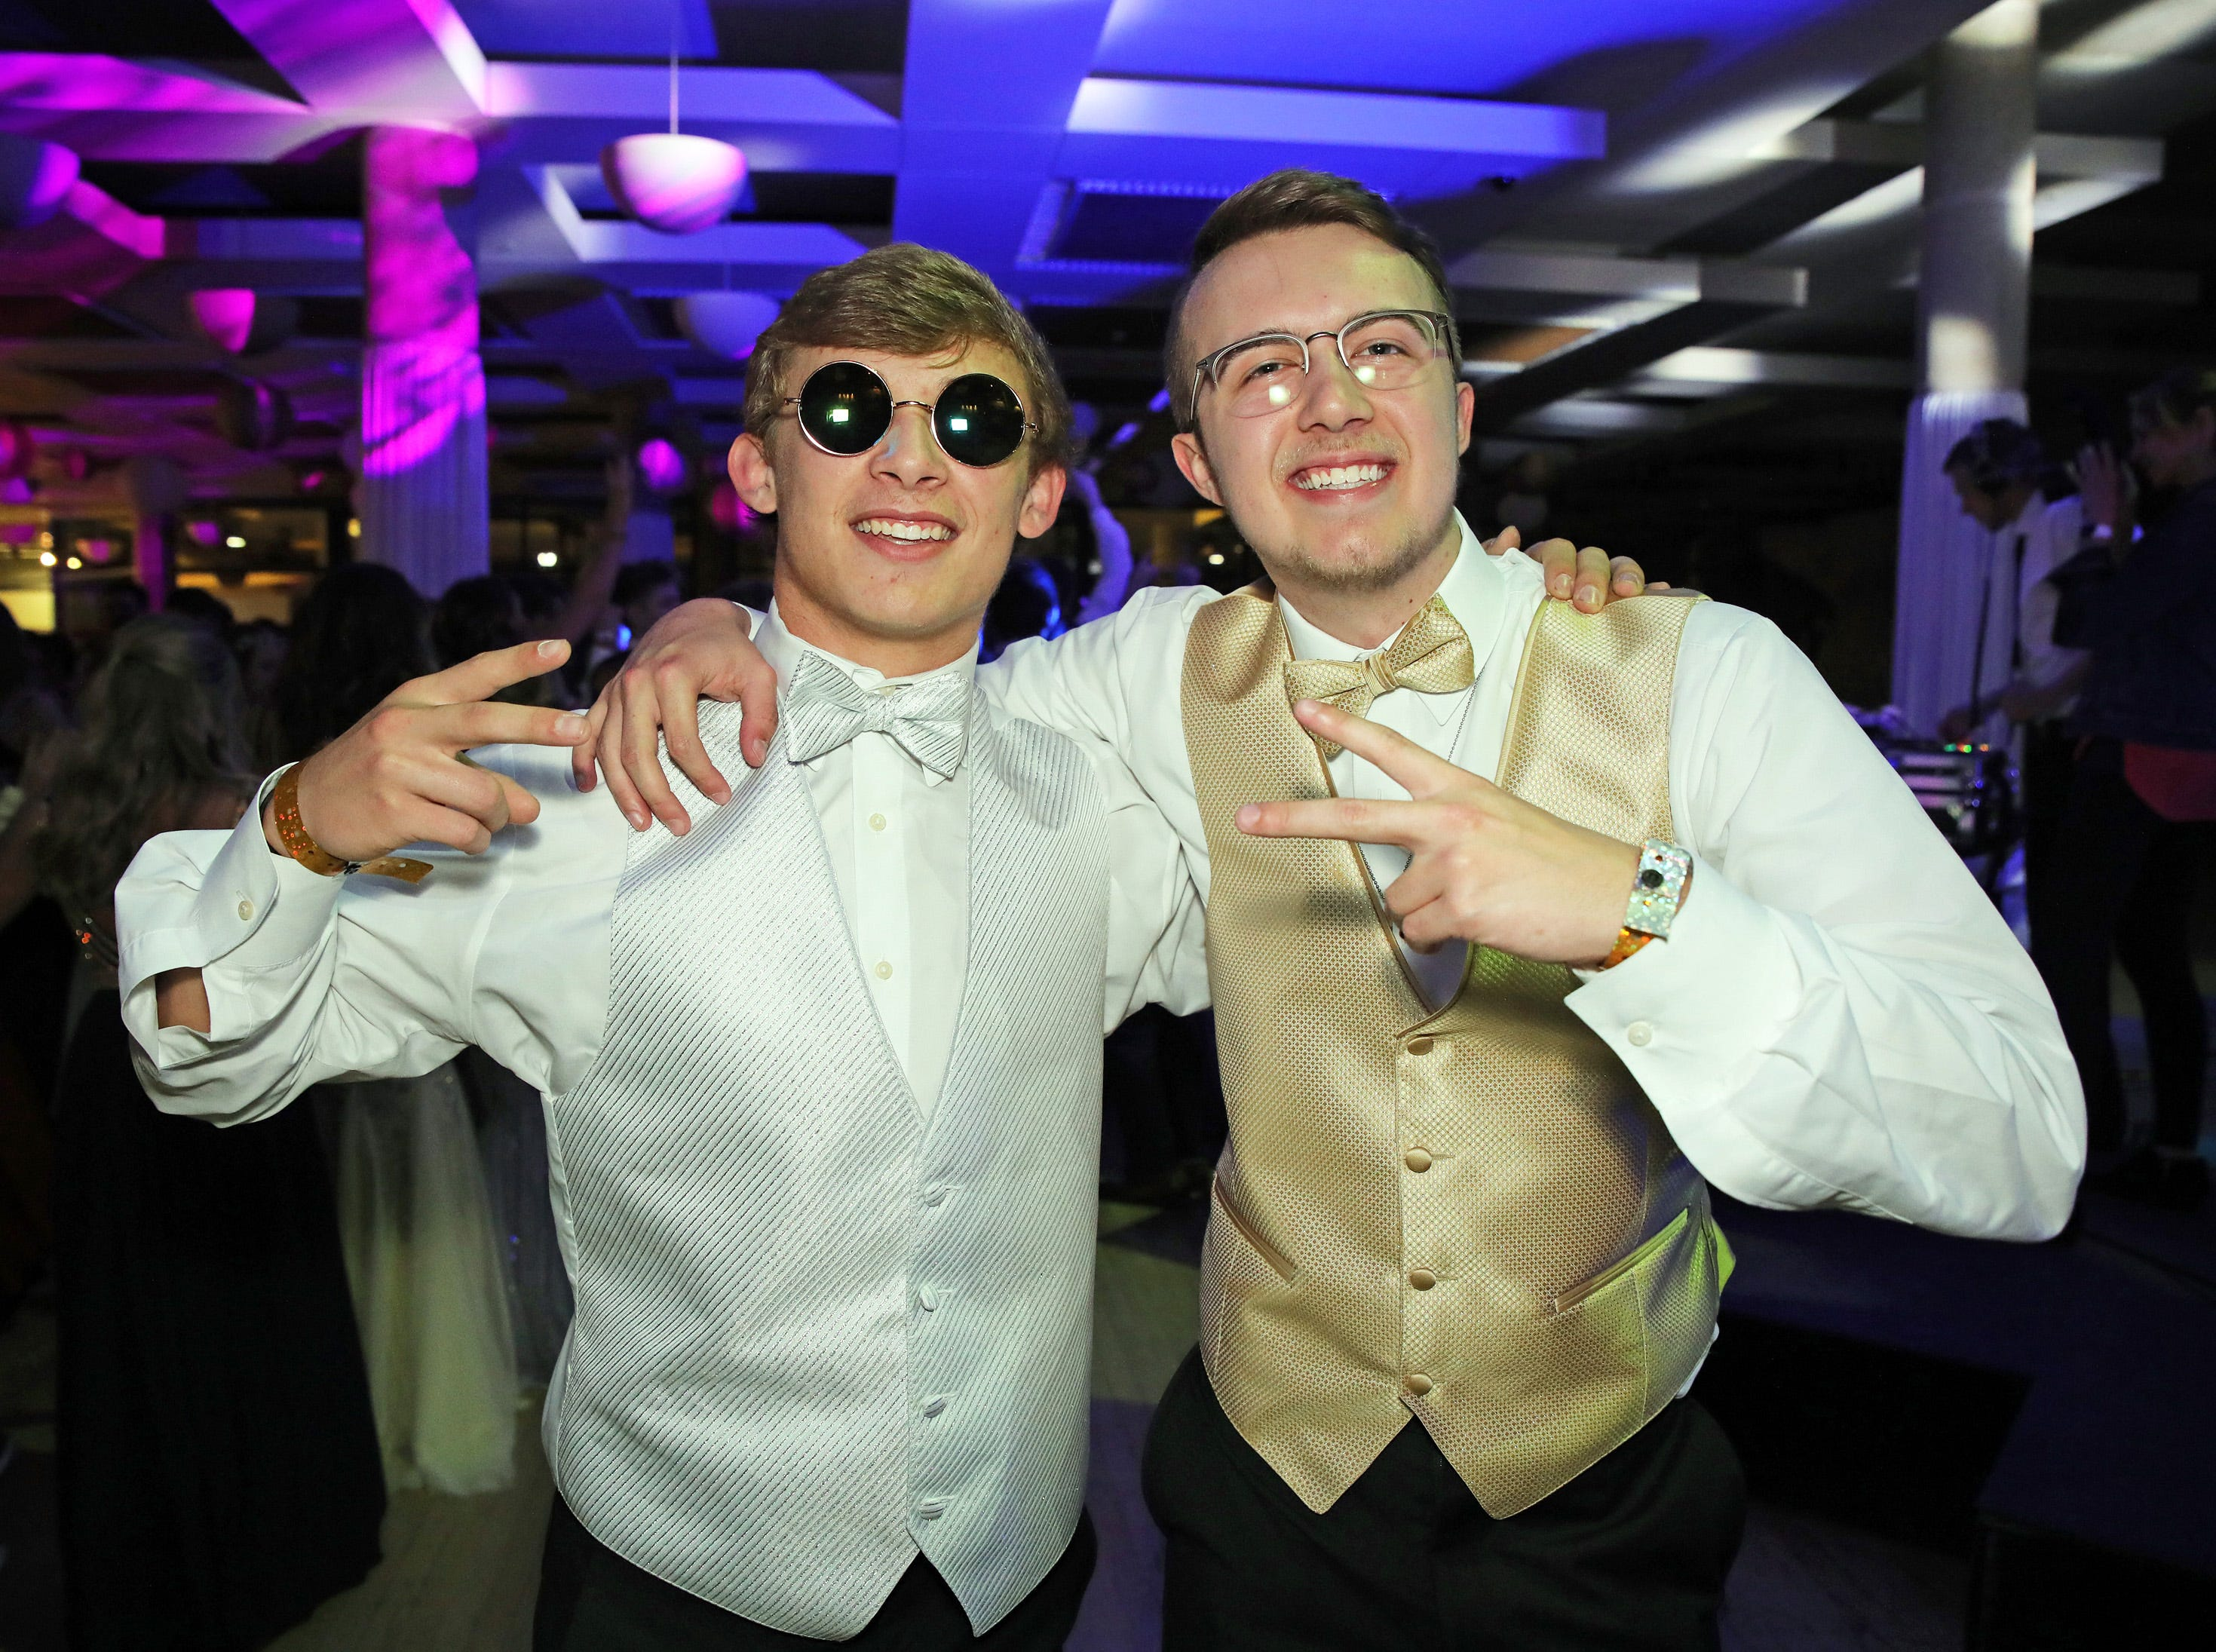 Seniors Cory Prange and Adam Robertson have fun during the Ankeny Centennial High School prom at the State Historical Building in Des Moines on Saturday, April 13, 2019.